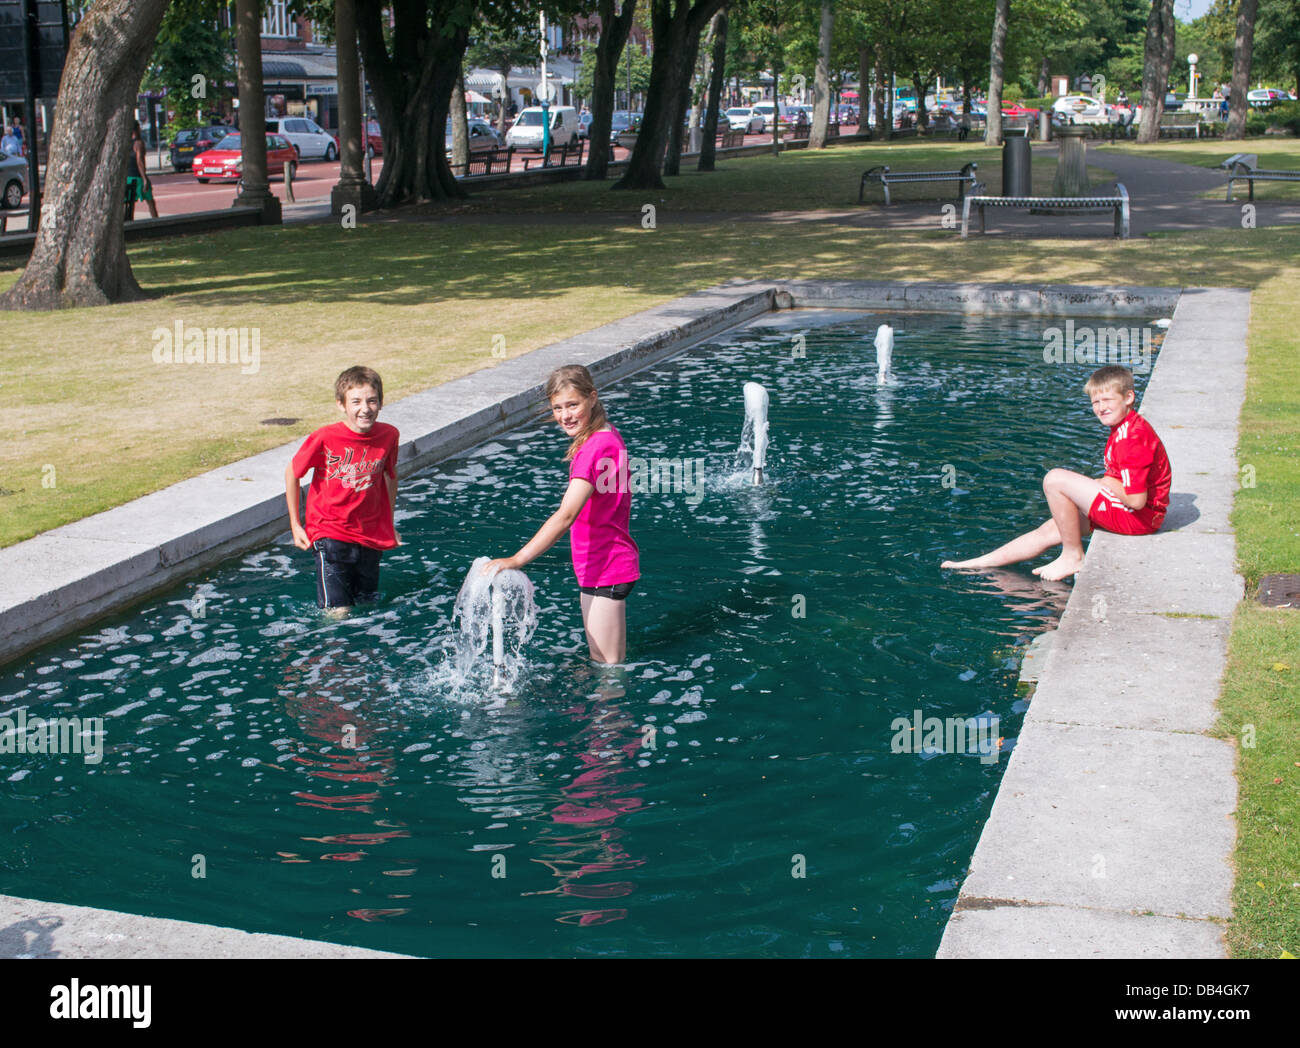 Children cool off in water feature in Southport park during summer heatwave, north west England, UK - Stock Image